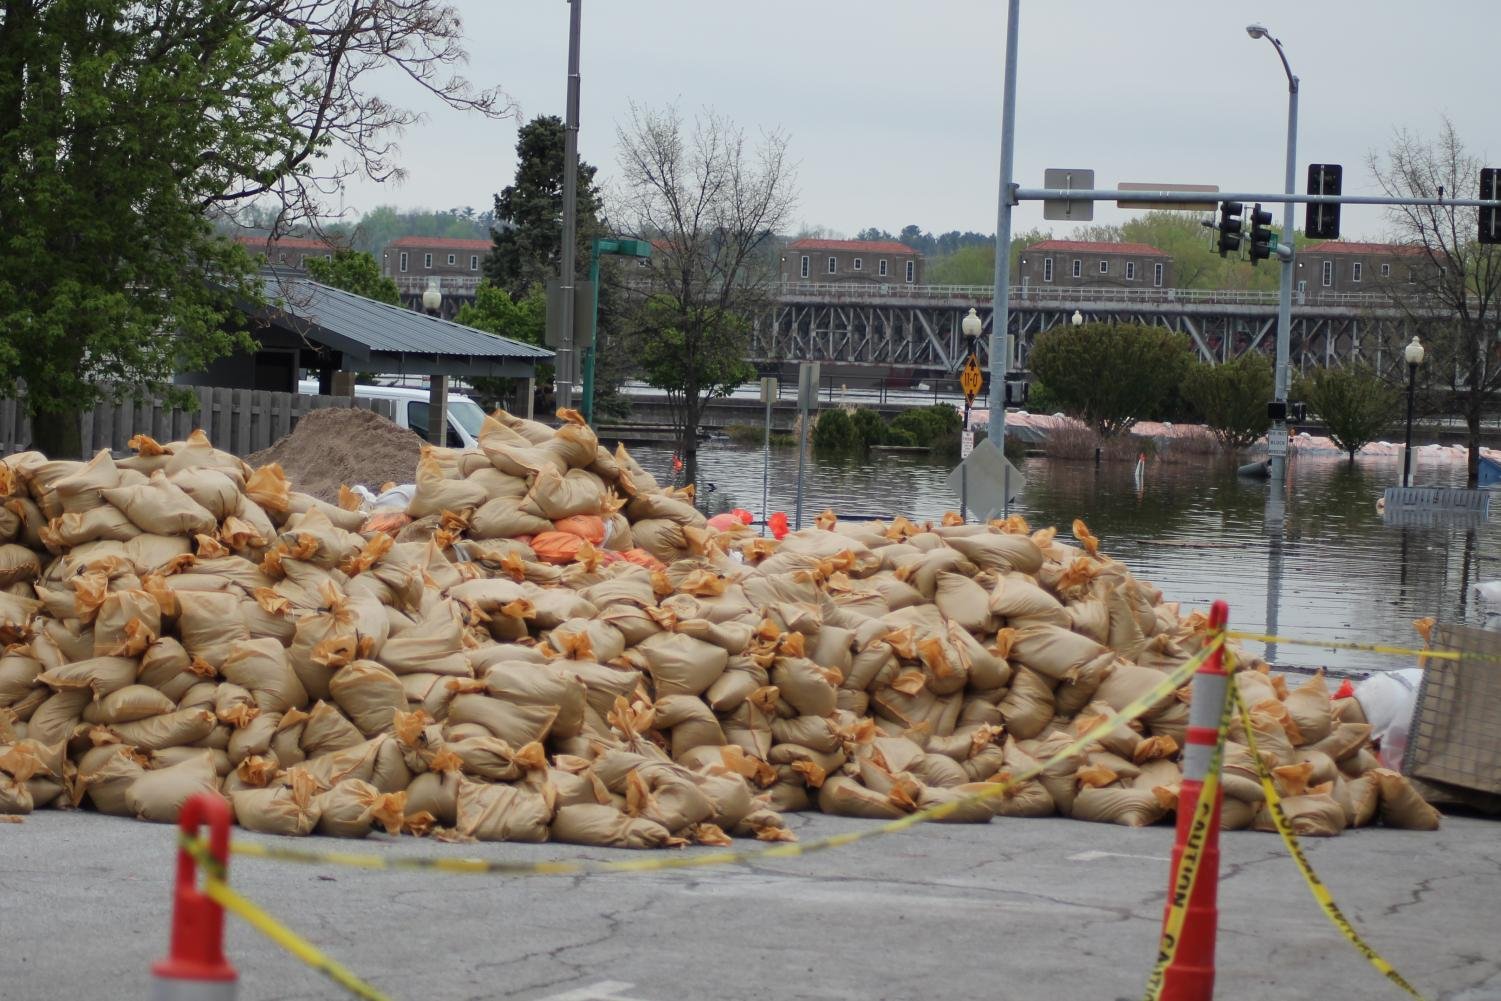 A pile of sandbags sits ready to combat the flooded streets of Davenport.